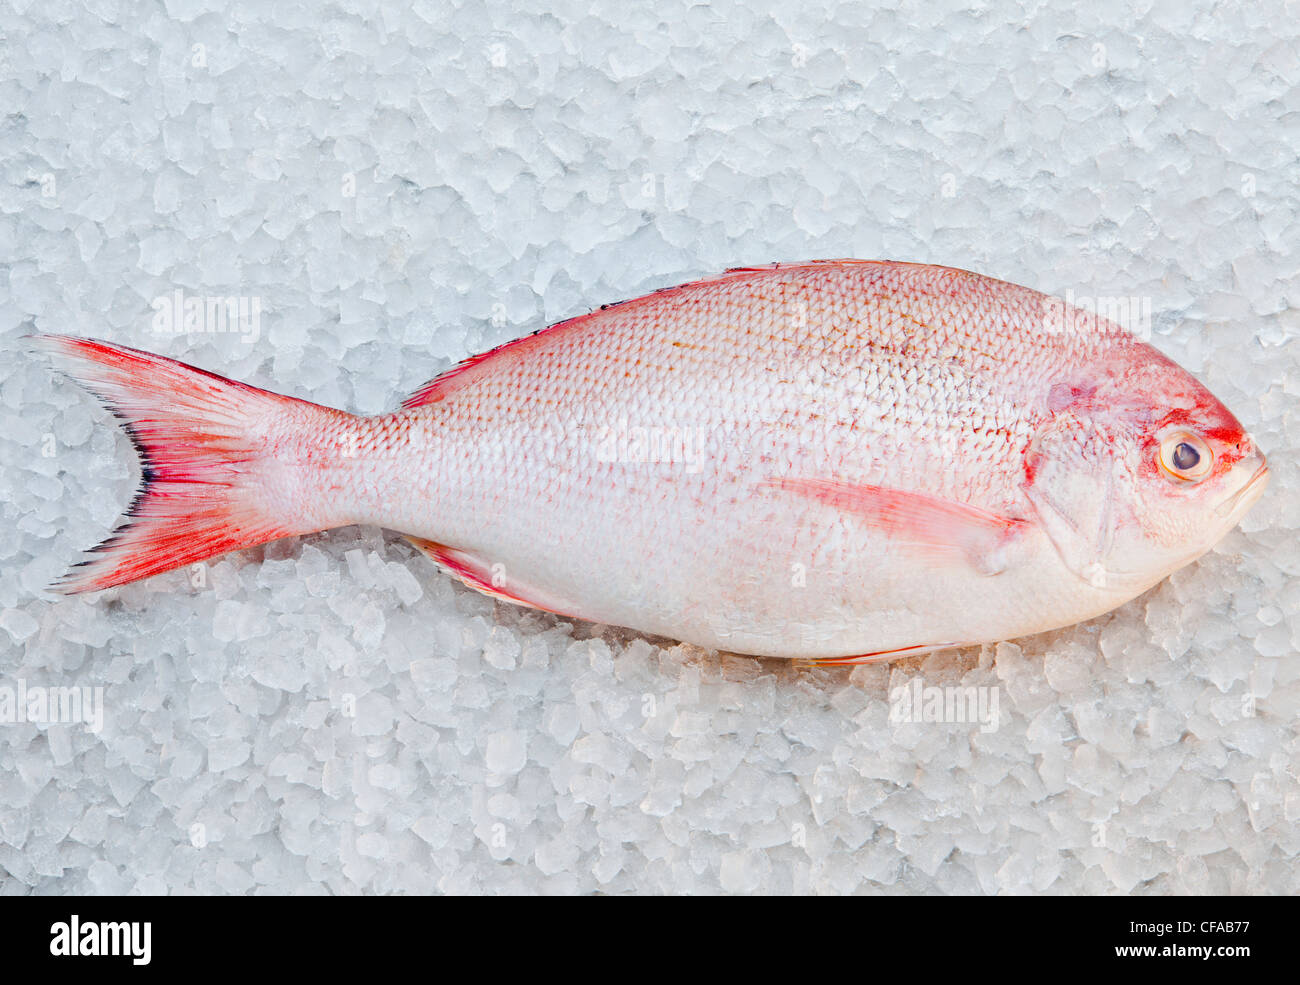 Close up of red snapper fish on ice bed Stock Photo